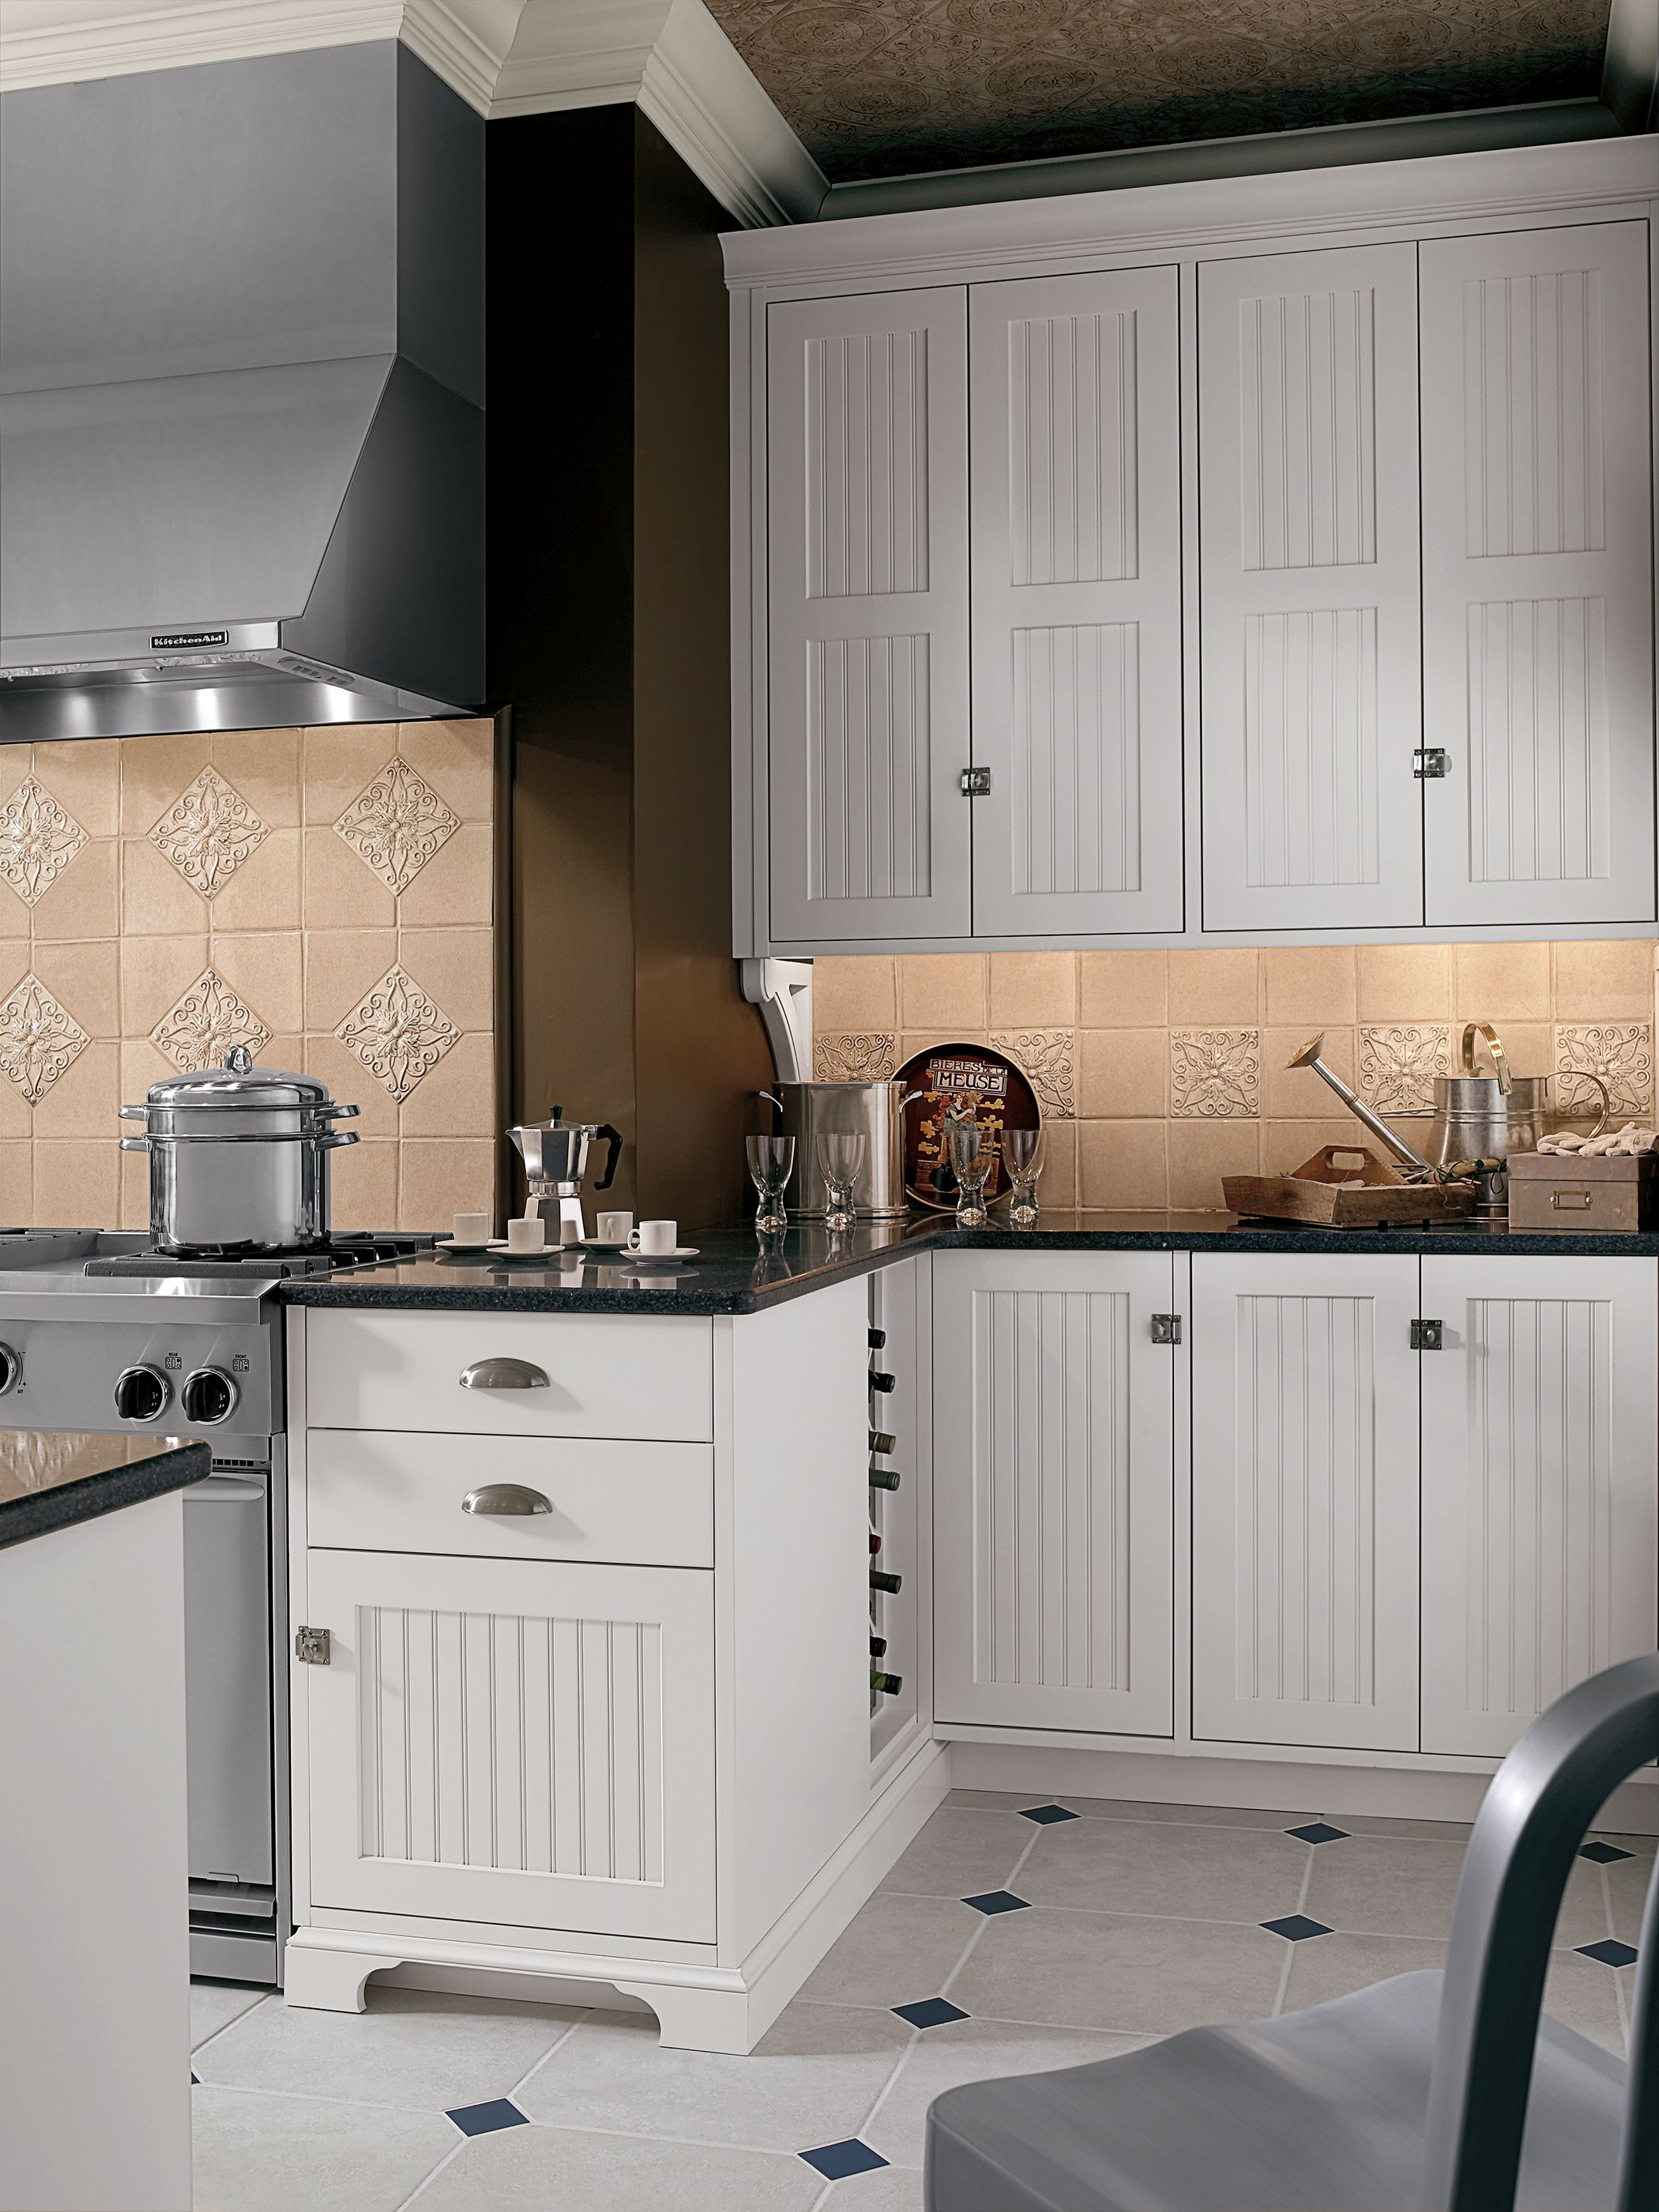 Colony Beaded Door Style Shown In Classic Opaque Lace On Maple Wood Mode Classic White Kitchen Home Kitchens